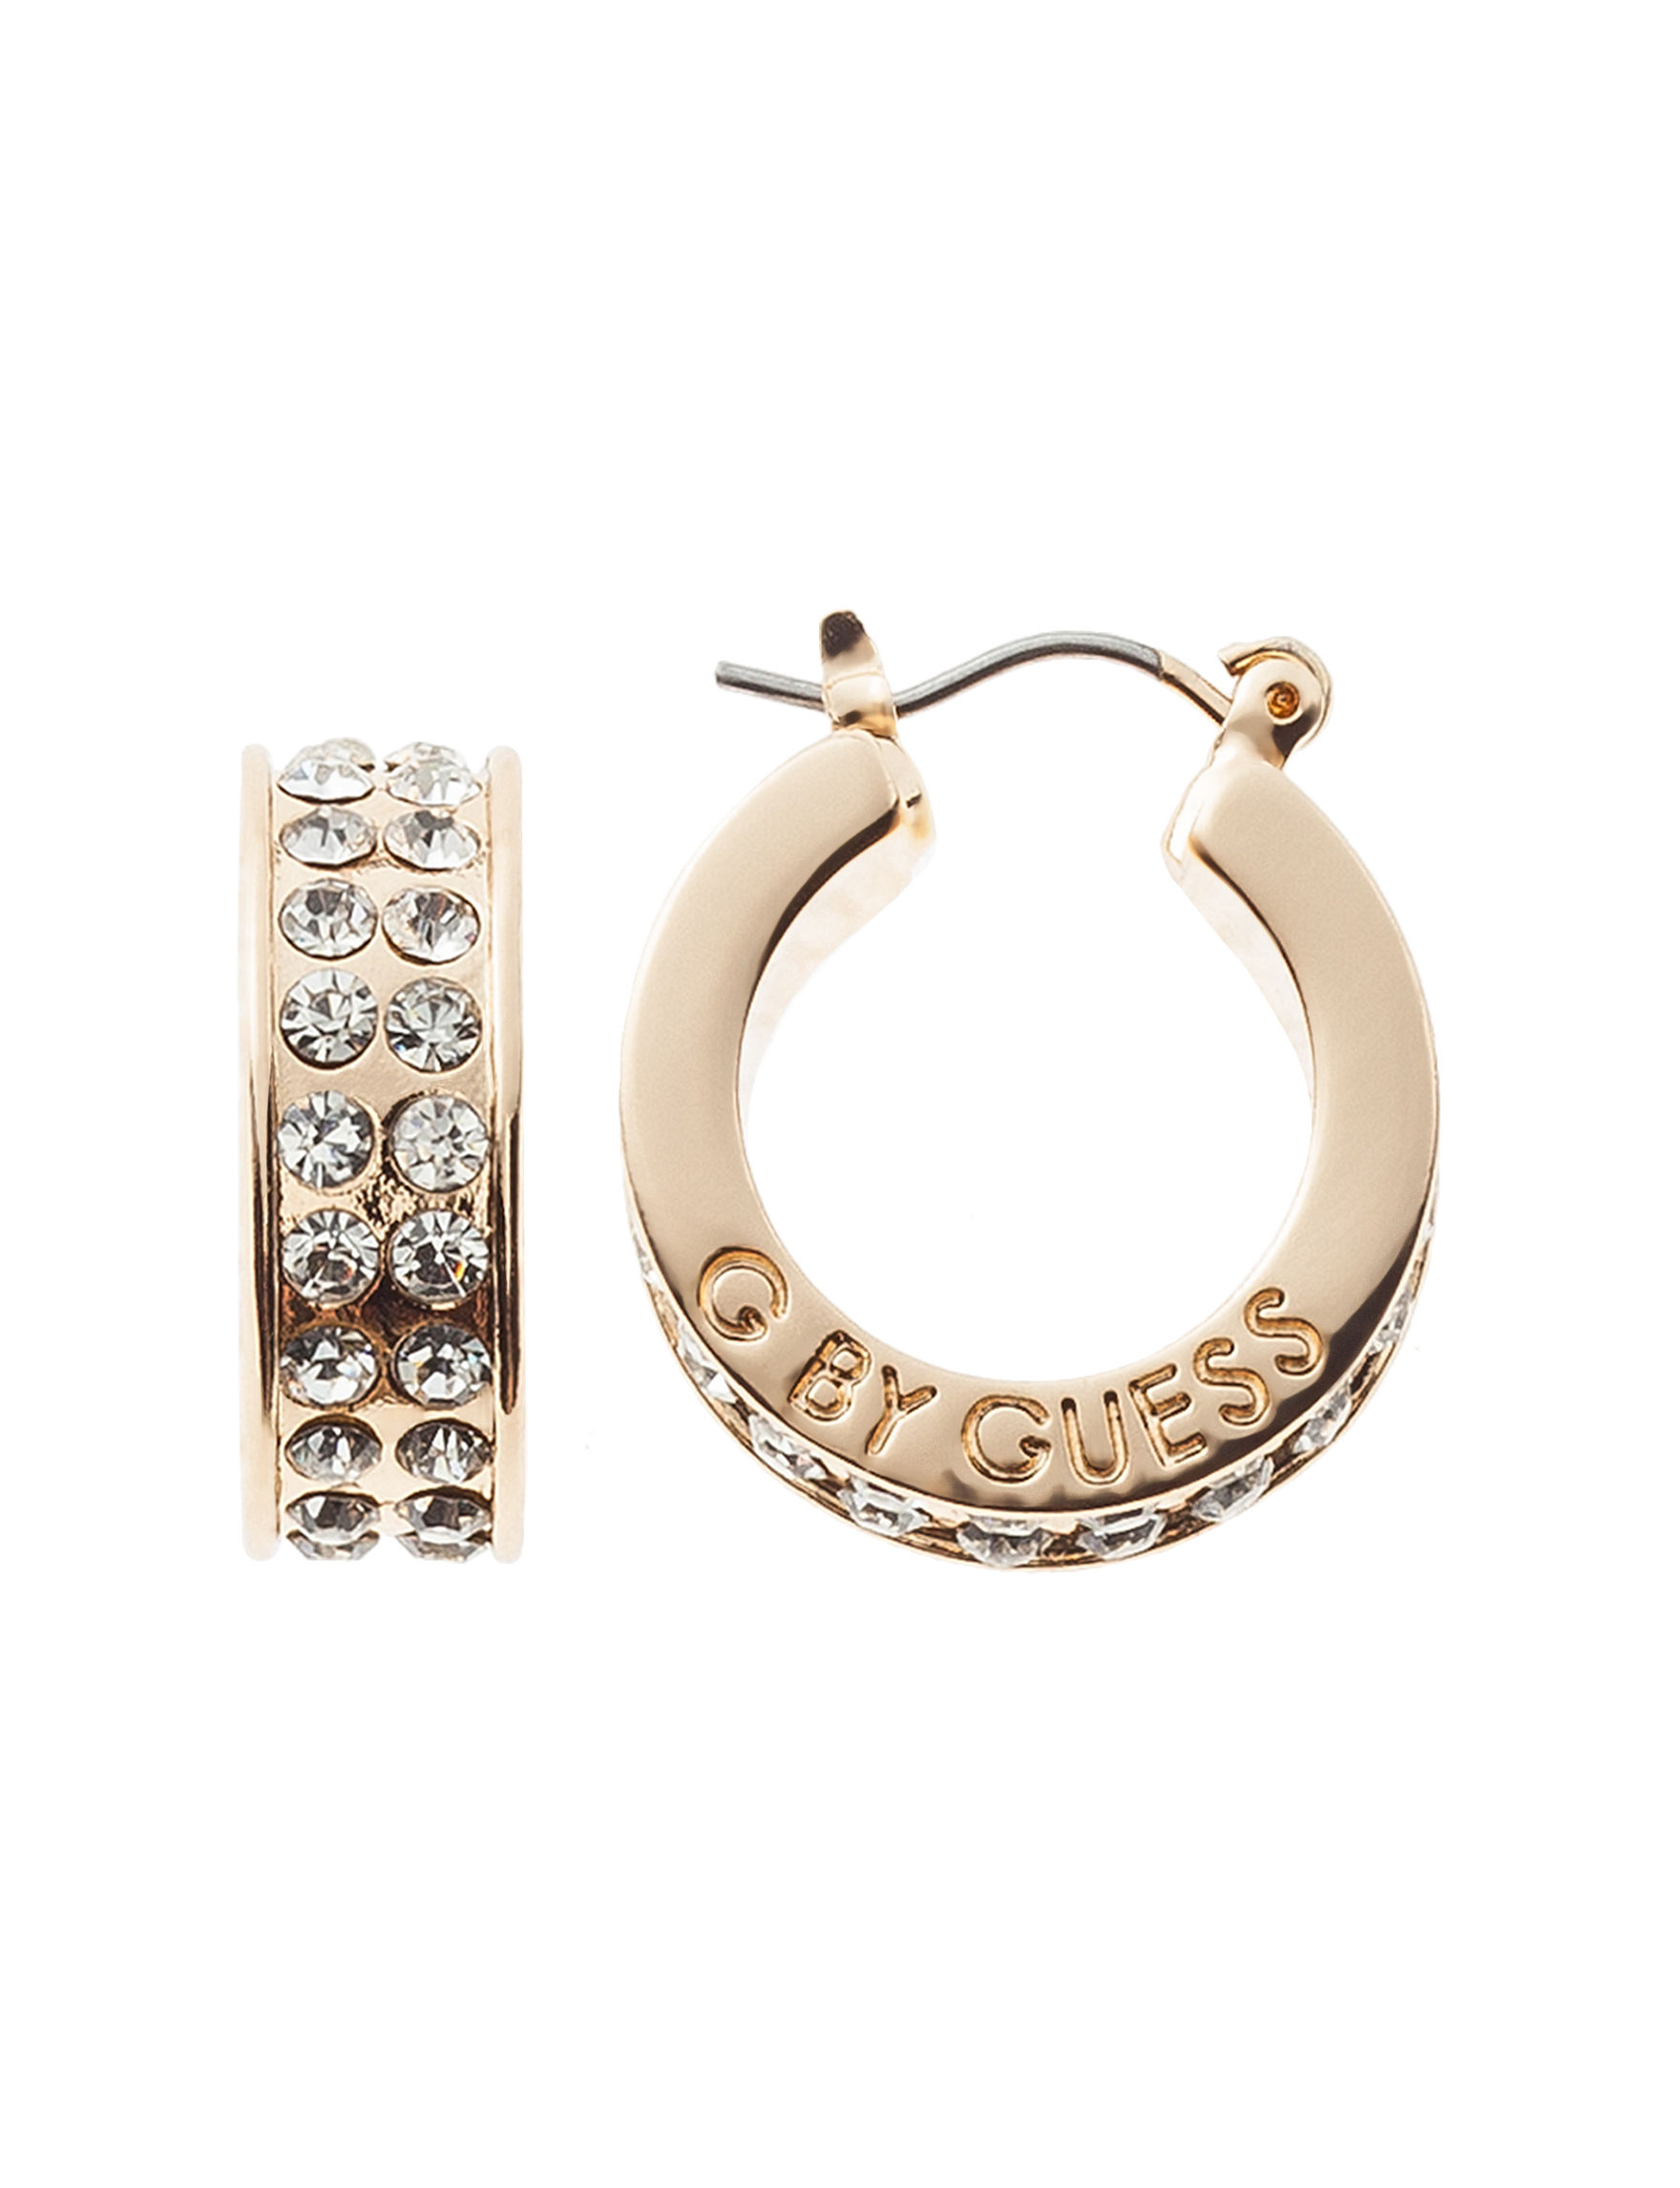 G by Guess Gold Hoops Earrings Fashion Jewelry